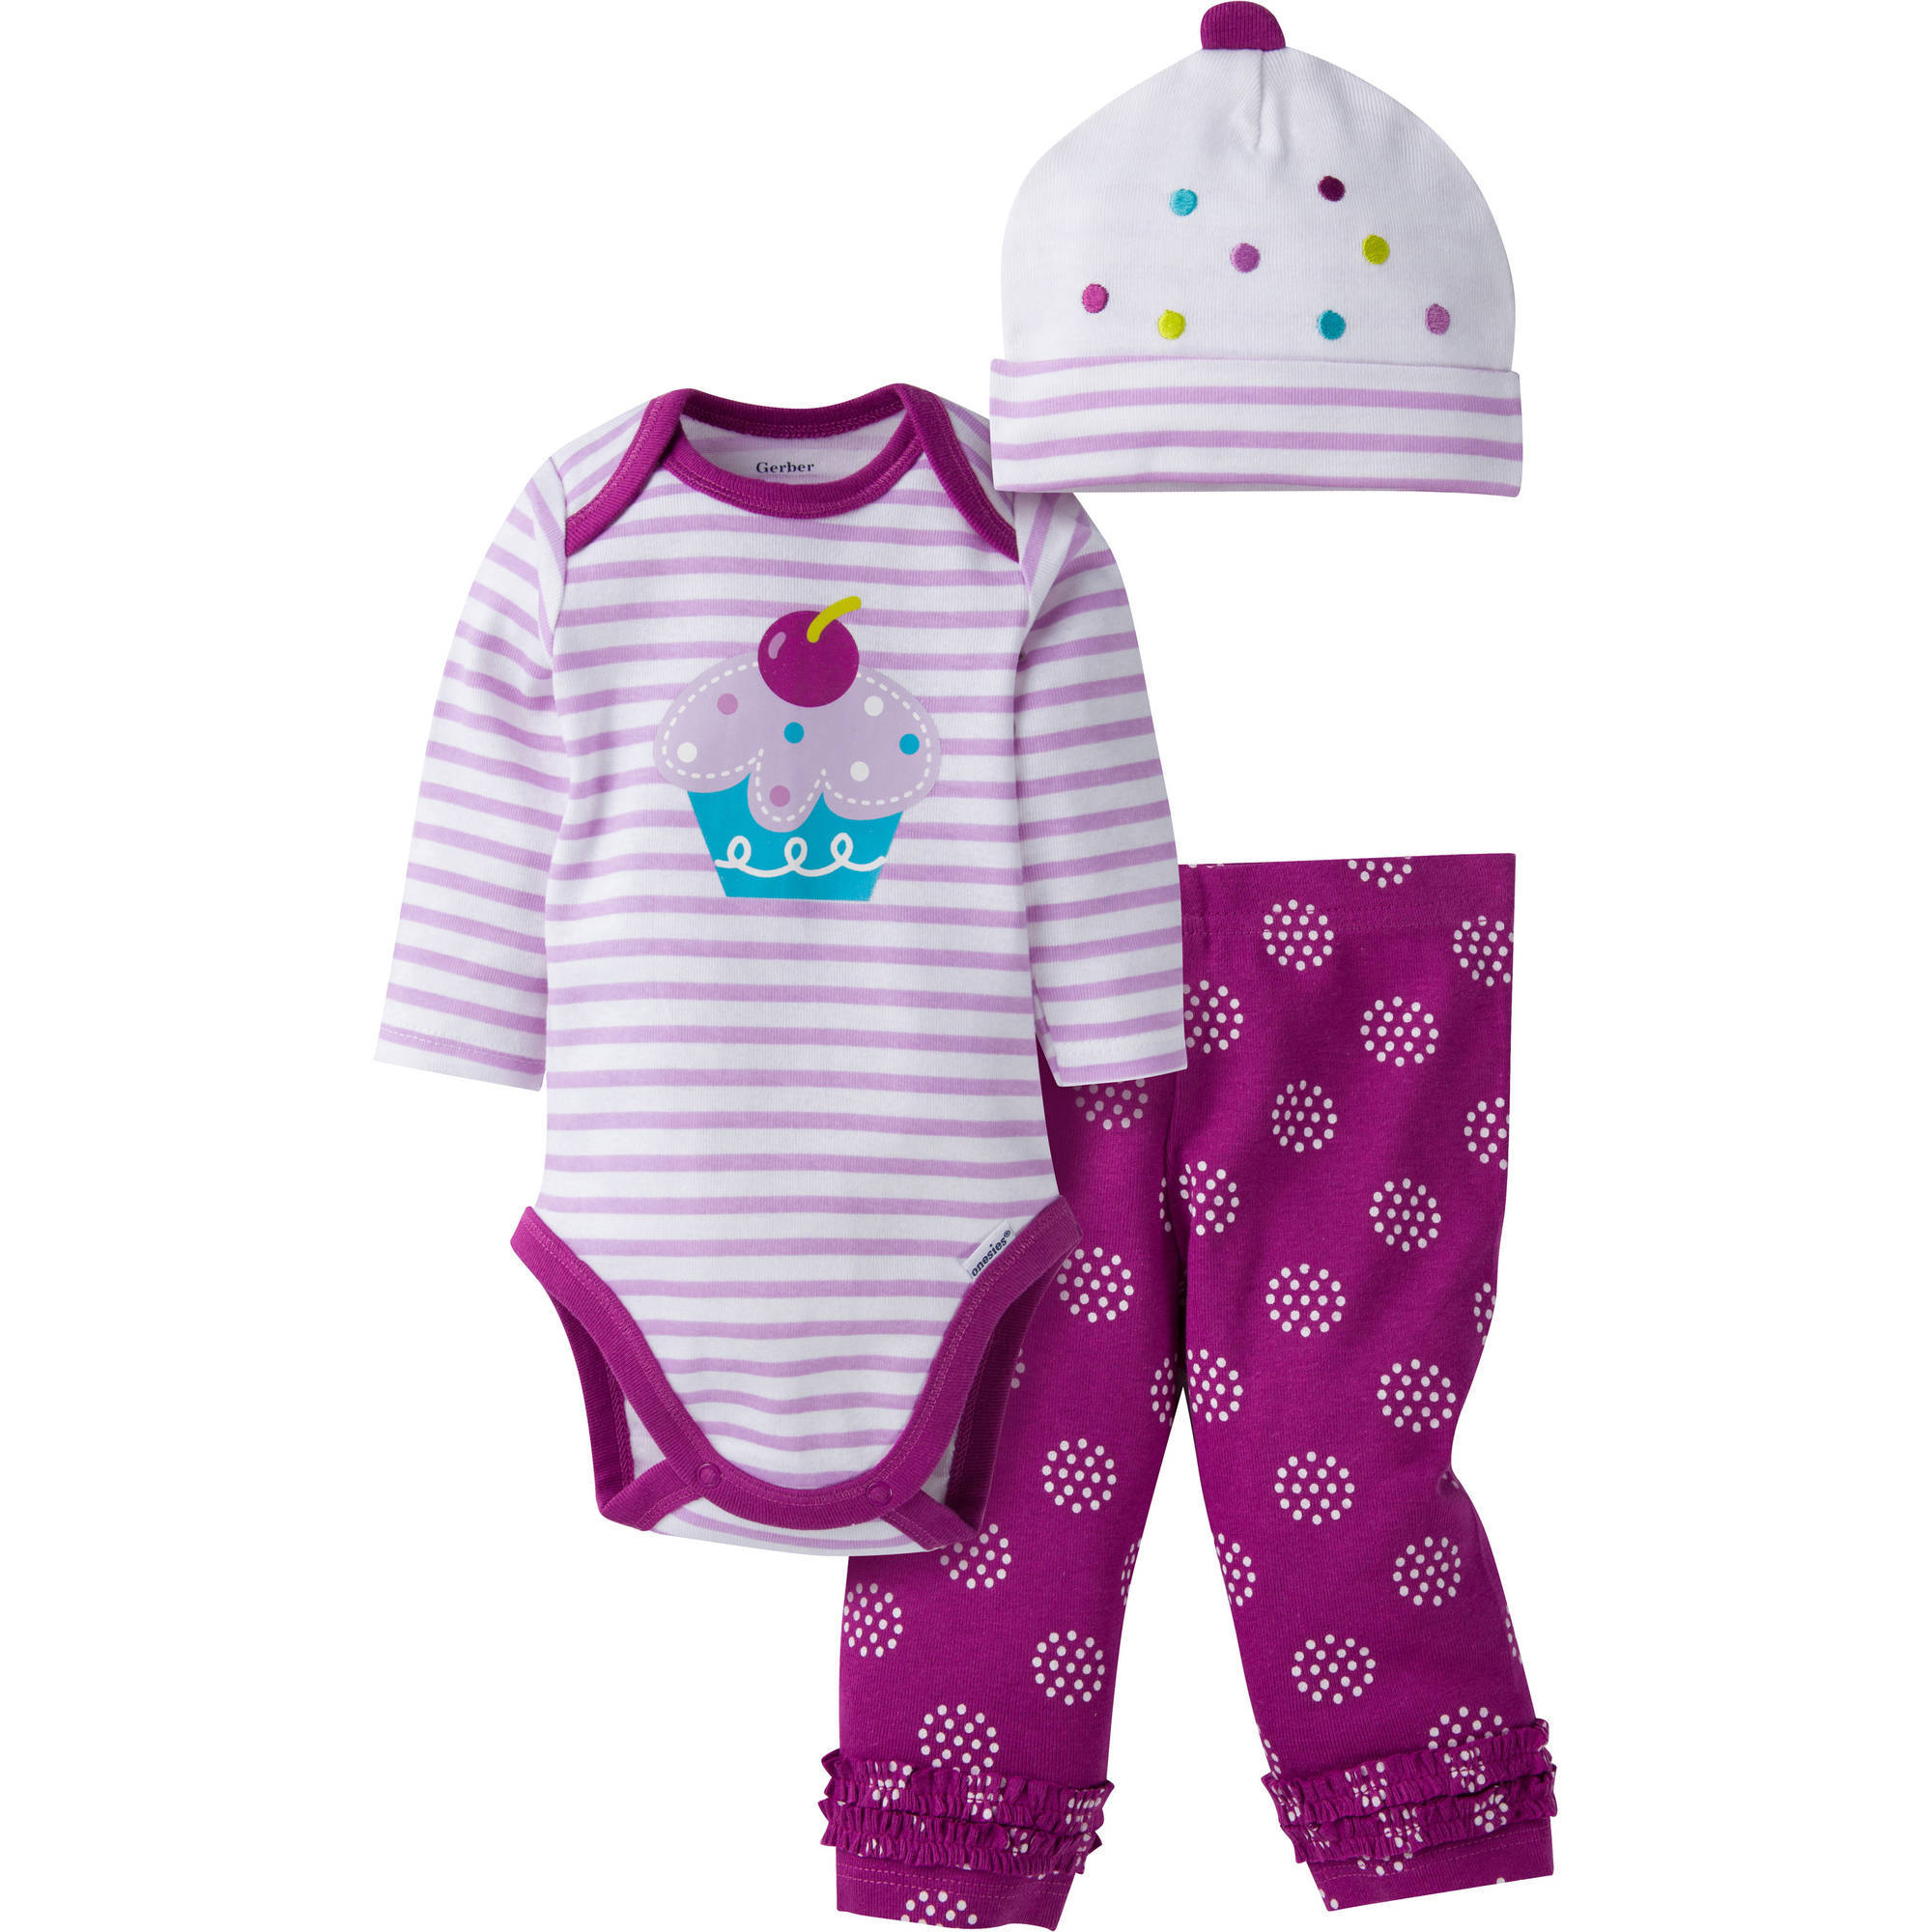 Gerber Newborn Baby Girl Bodysuit, Pant, and Cap Outfit Set, 3-Piece